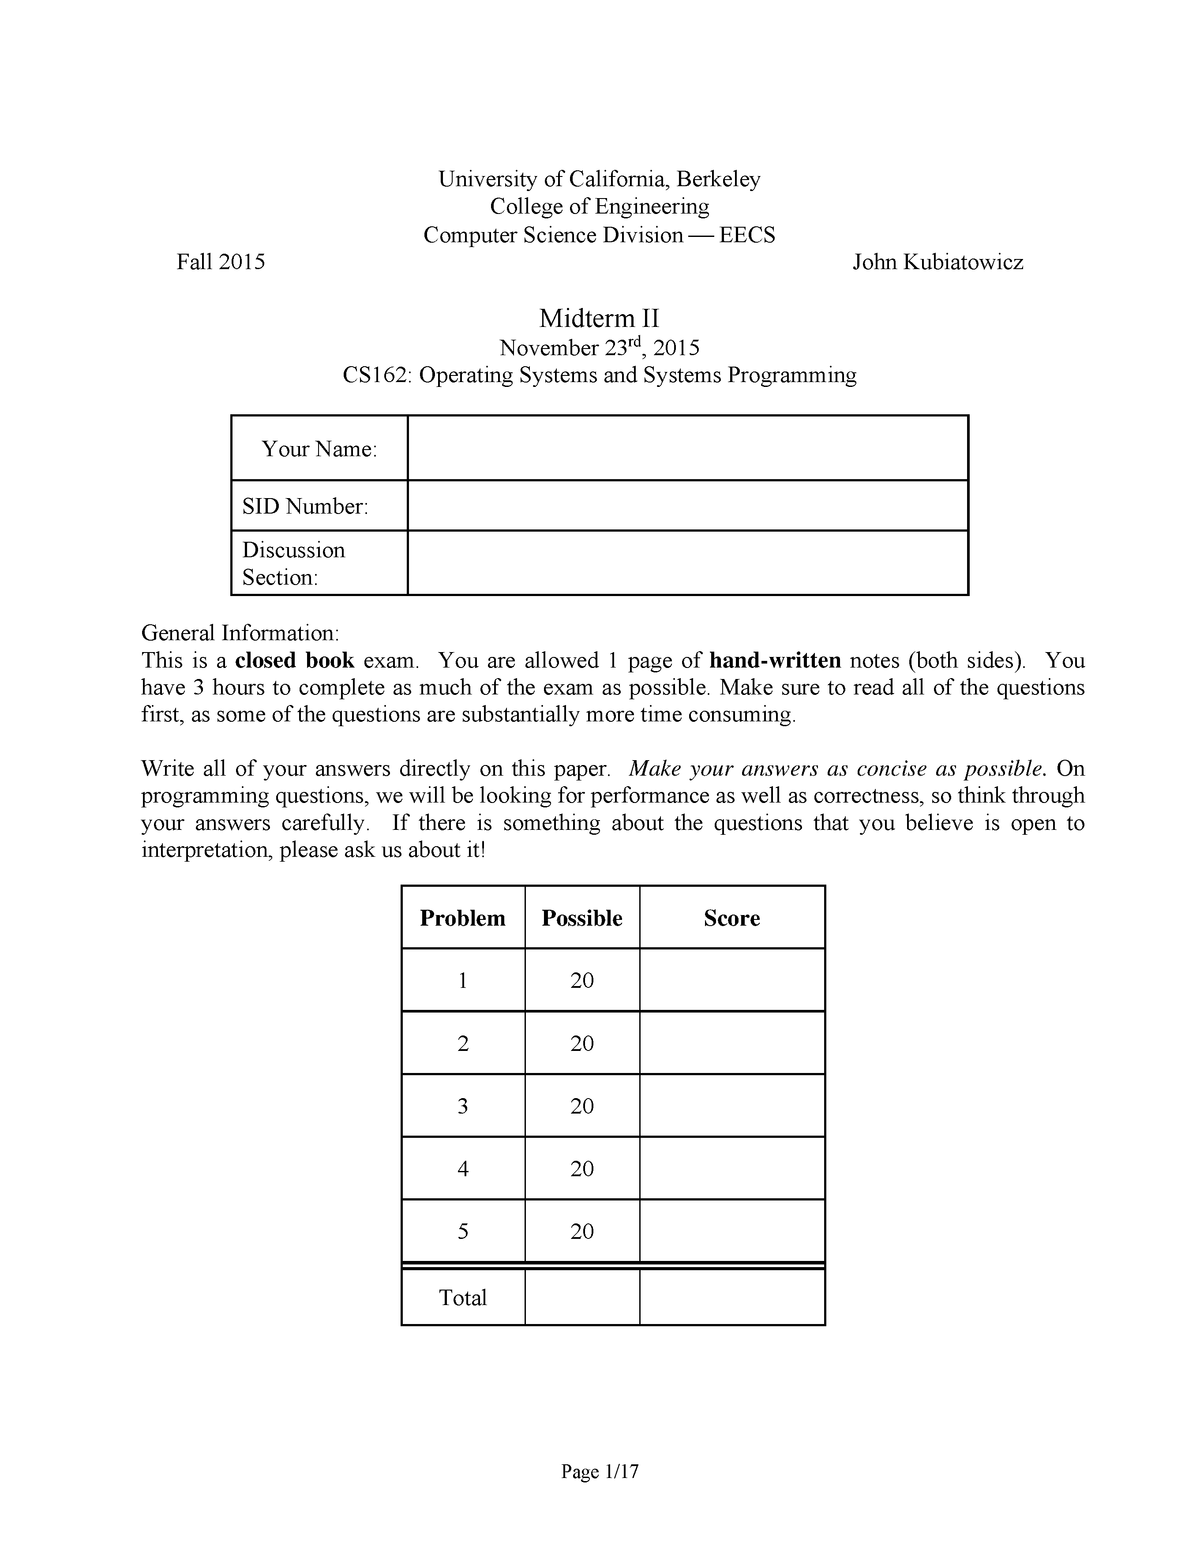 Exam 2015 - COMPSCI 162: Operating Systems And System Programming